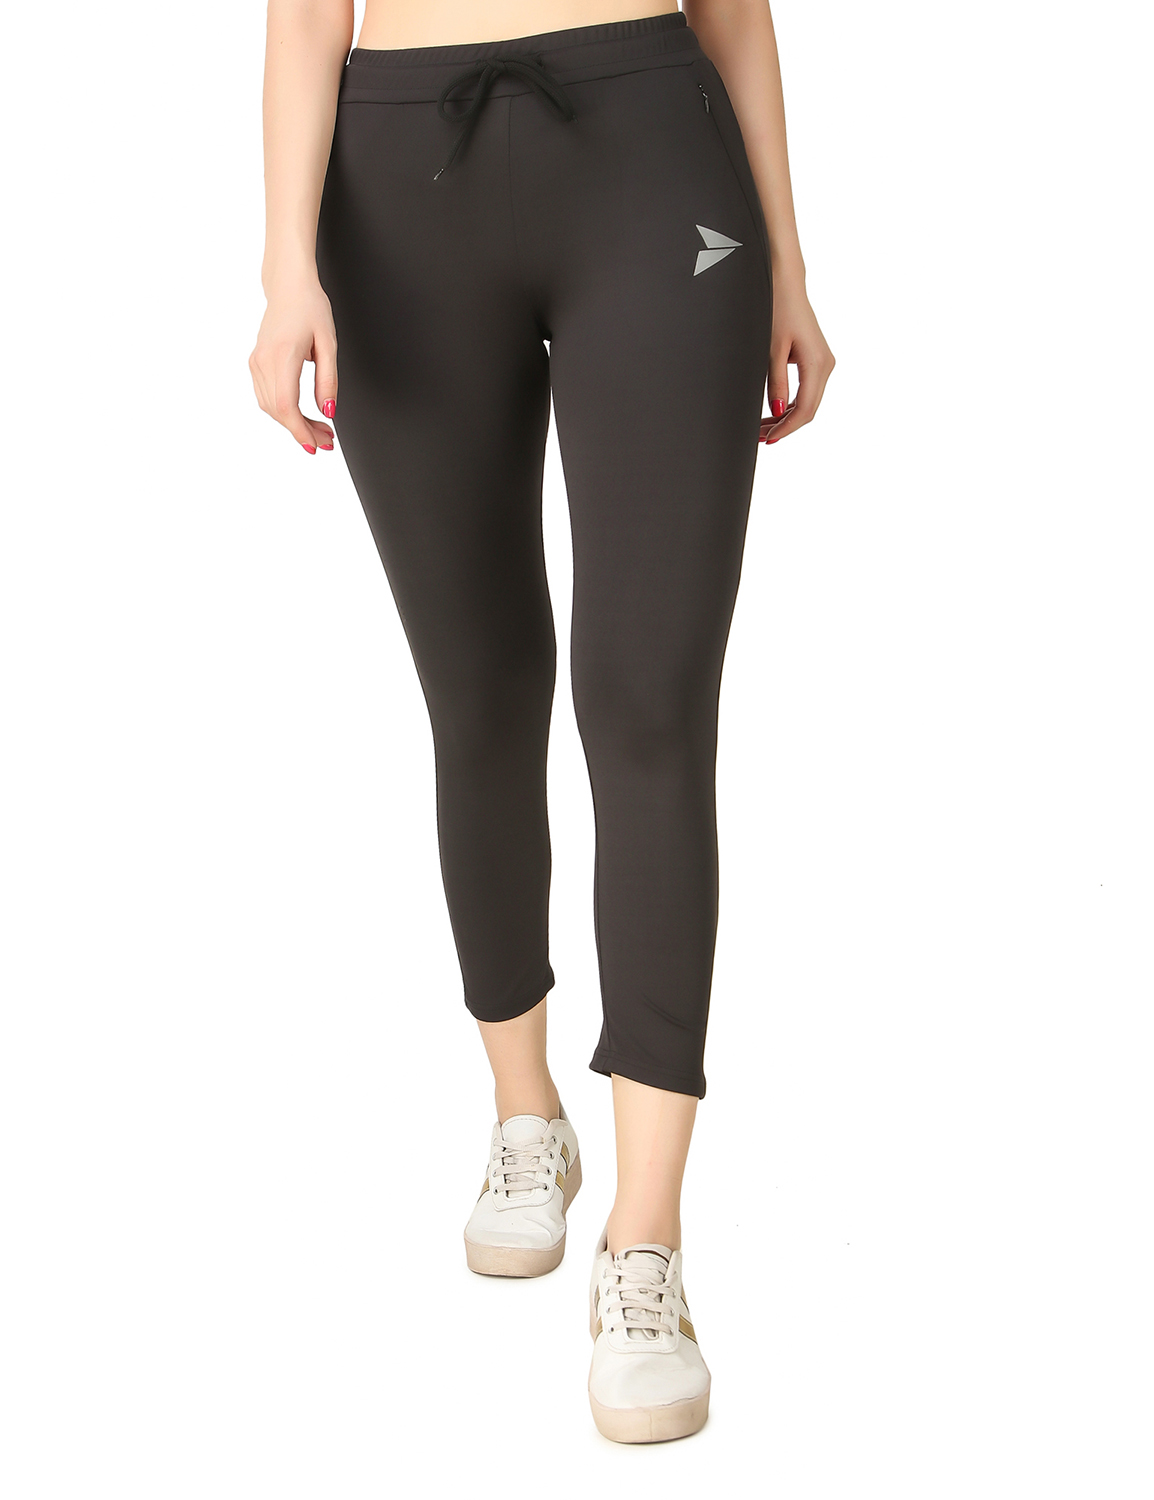 Fitinc | Fitinc Women Black Trackpant with Concealed Zipper Pockets and Drawstring